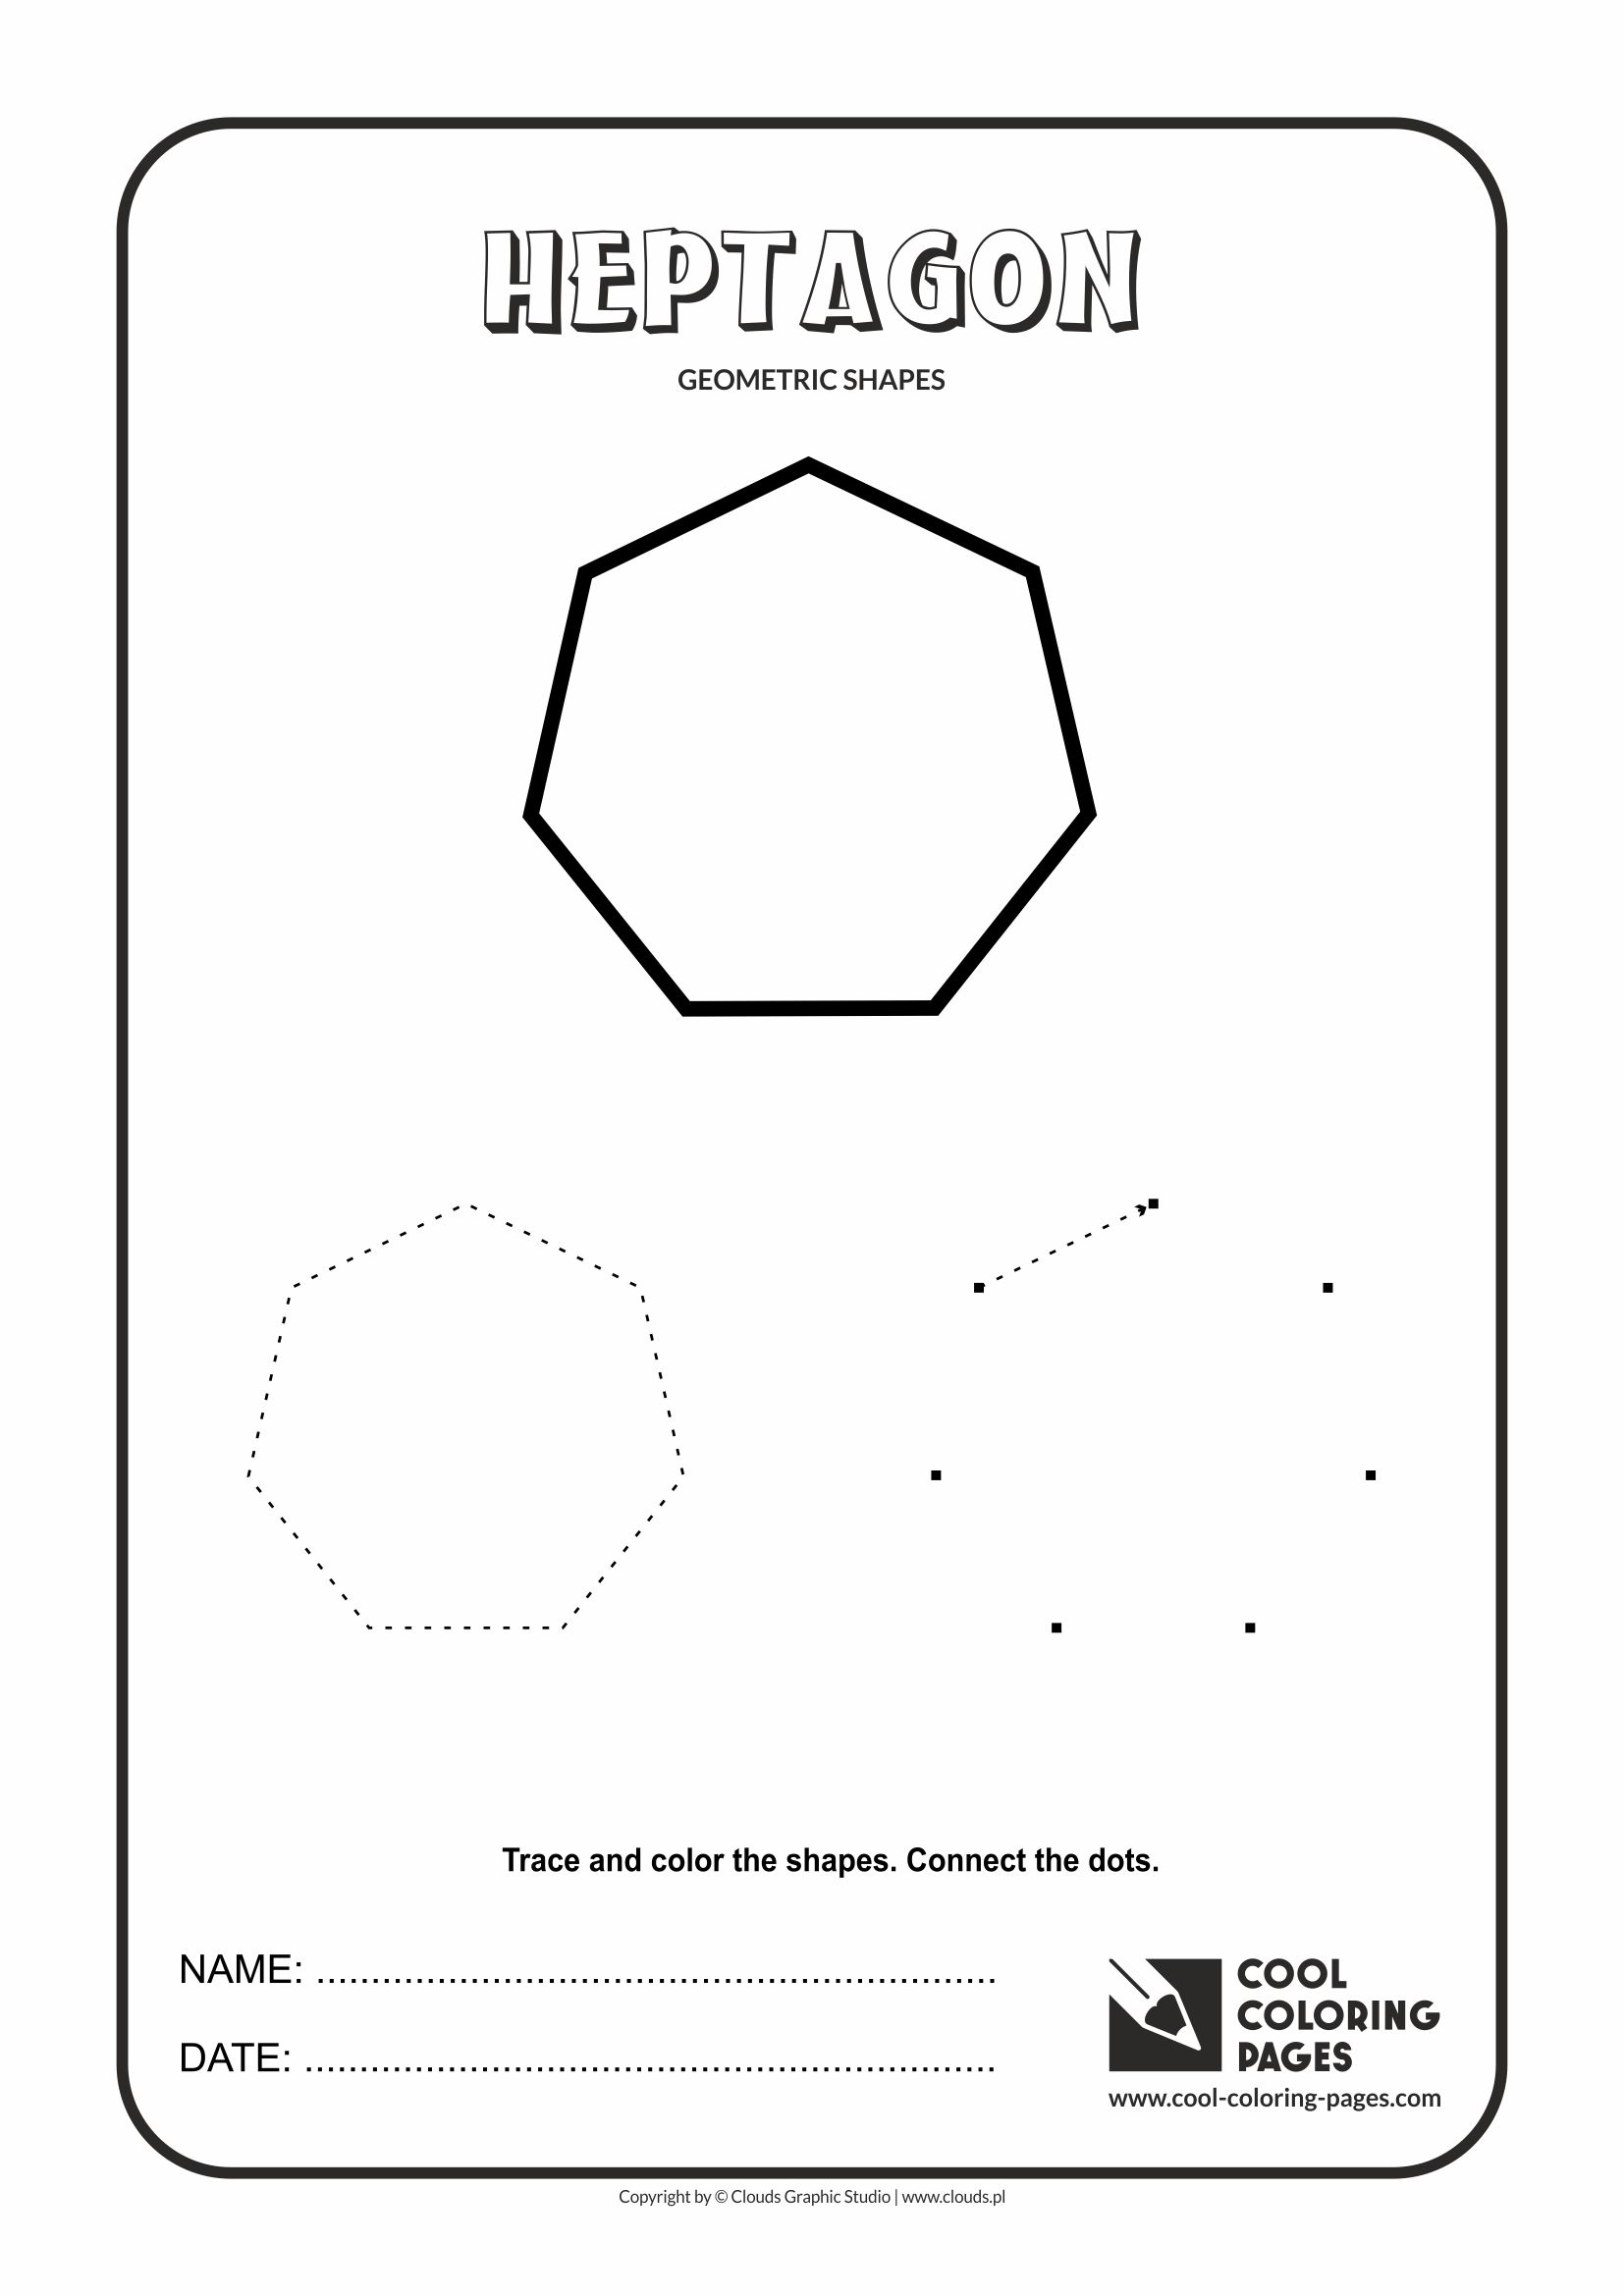 Cool Coloring Pages Heptagon